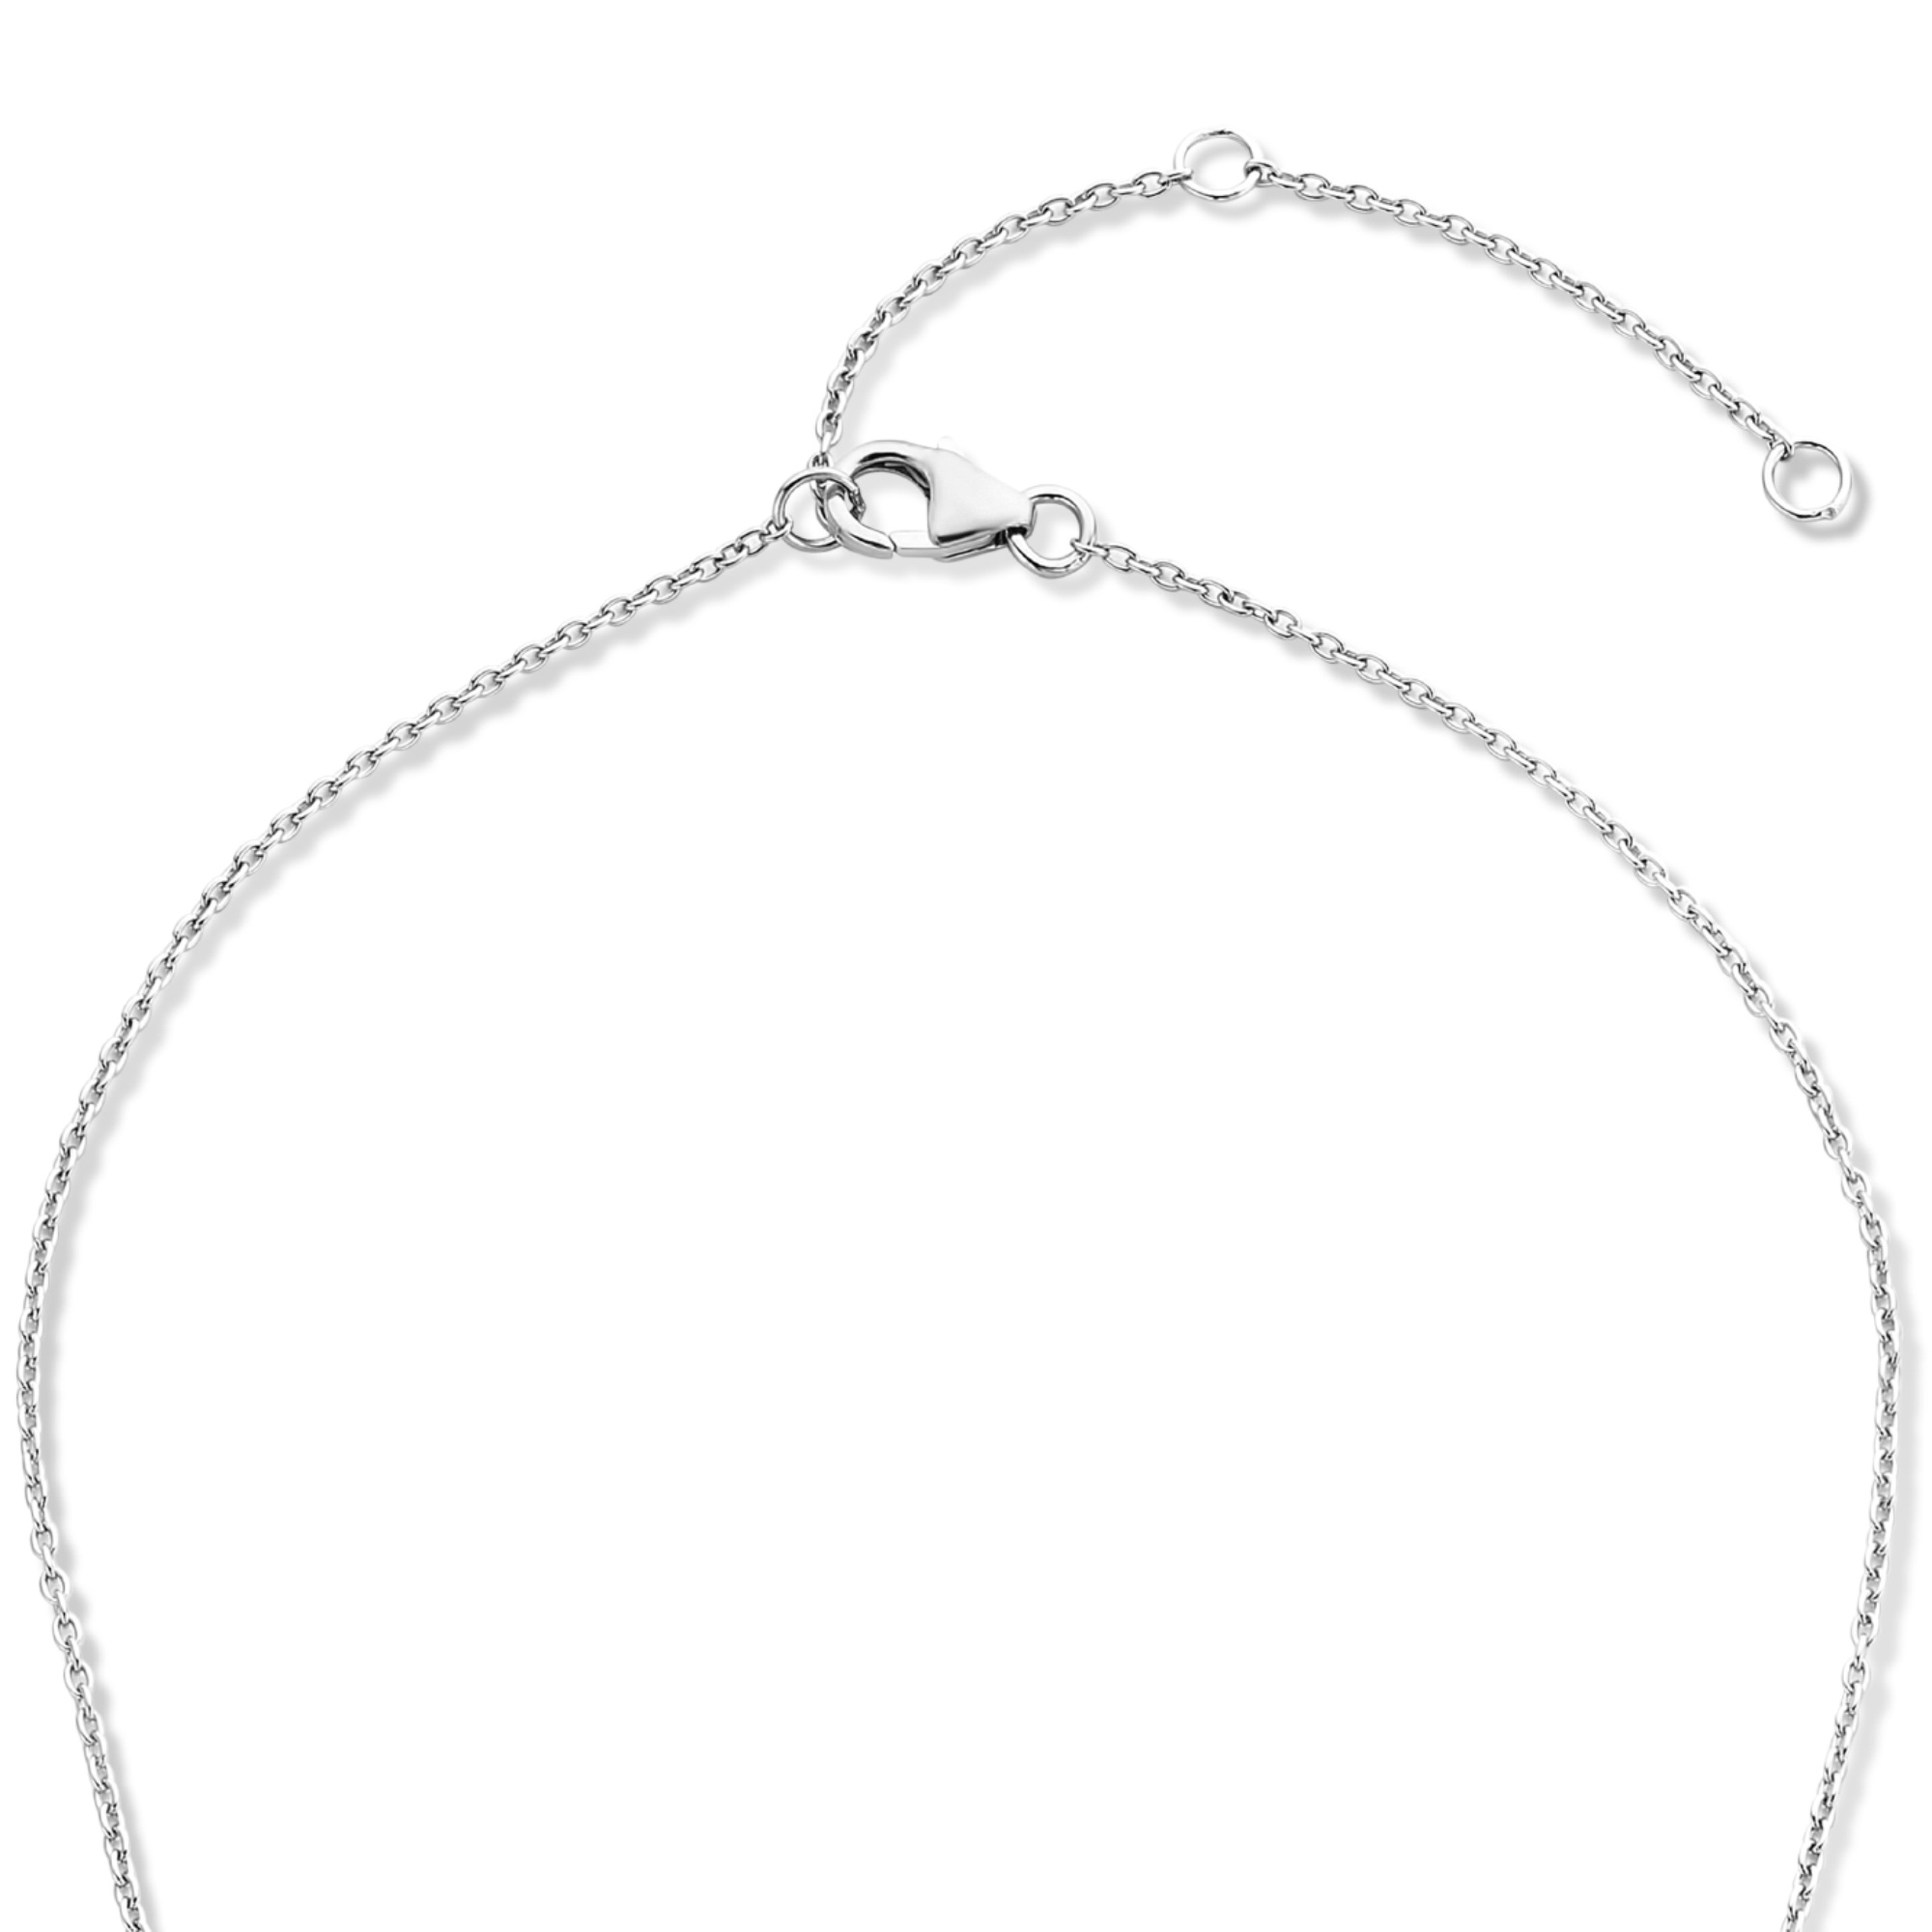 Violet Hamden Athens 925 sterling silver necklace with coin